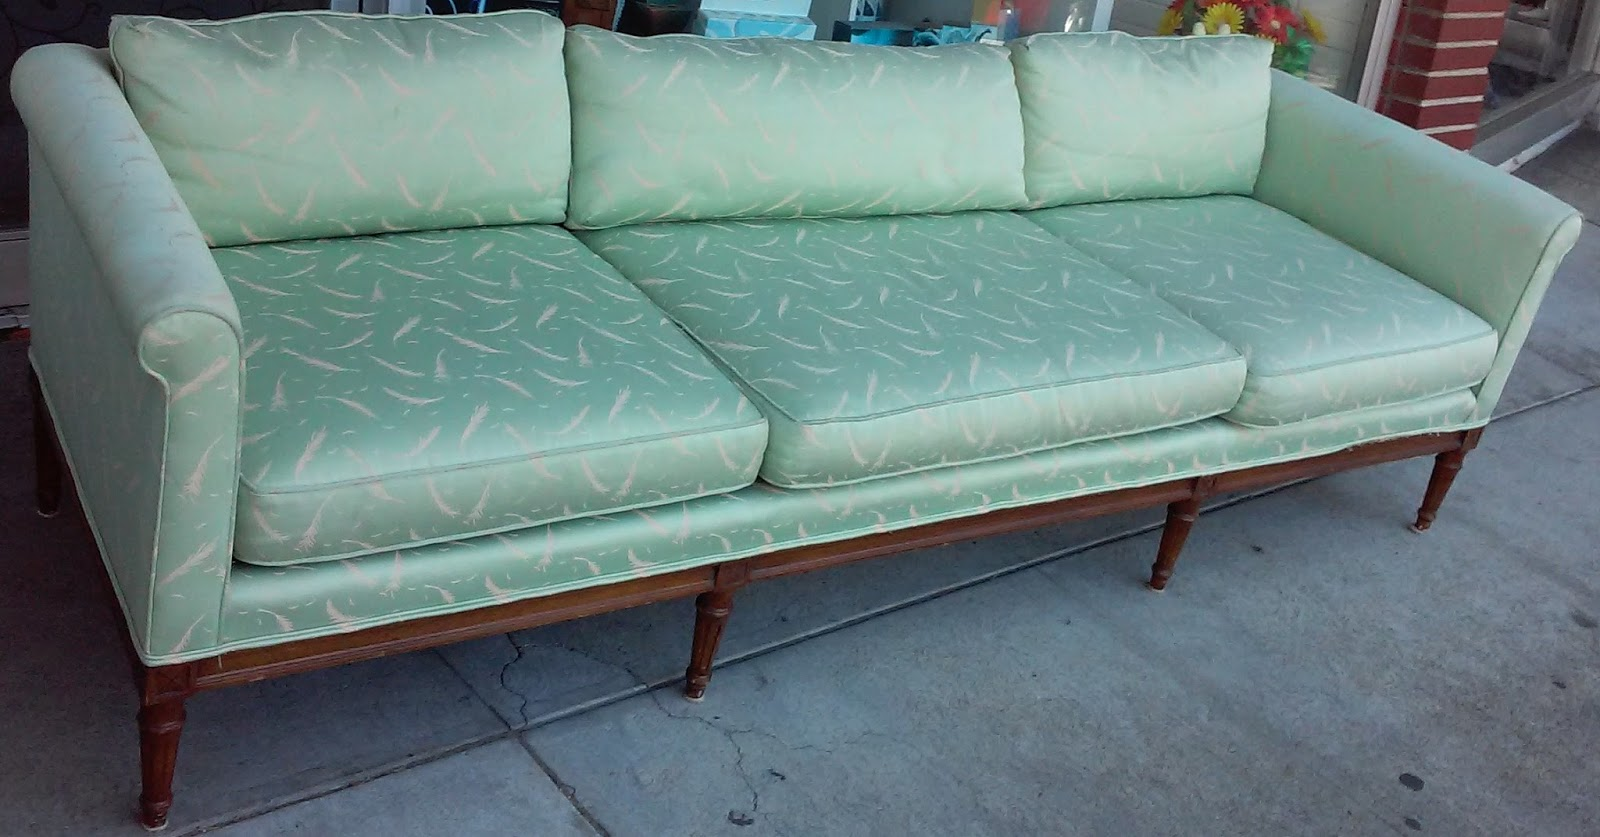 Uhuru Furniture Collectibles Sold Reduced Henredon